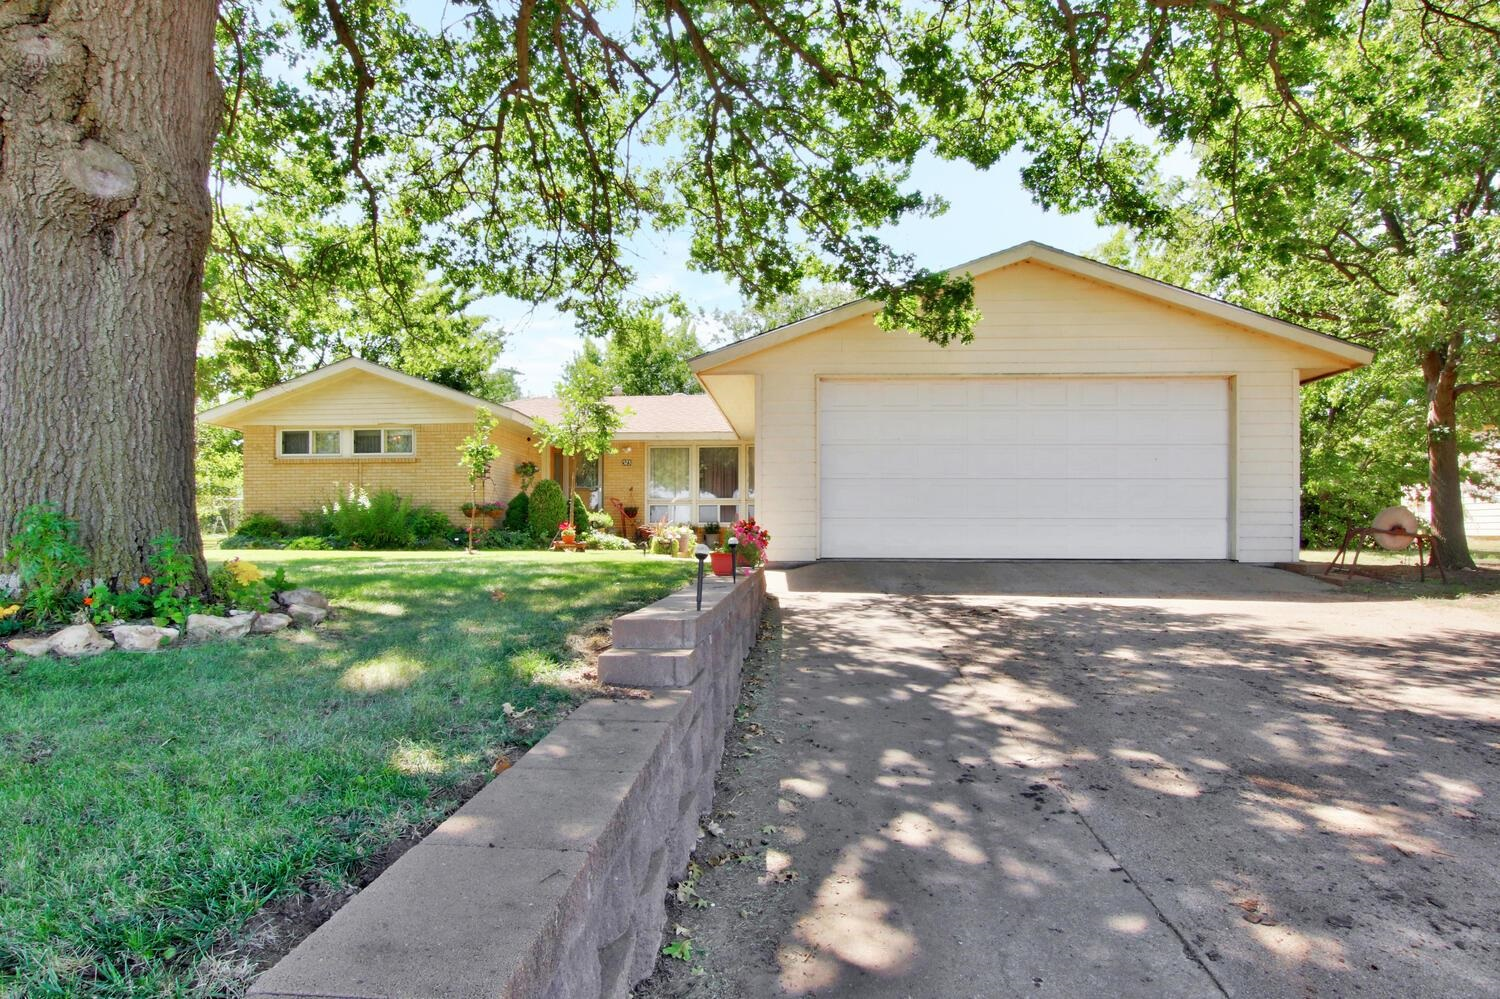 Welcome Home! This is a must-see for everyone. Well-maintained home in Norwich, Kansas--an easy 15-minute drive from west Wichita. You'll love small town living in this unbelievably spacious, full brick home! You'll be welcomed by beautiful landscaping and a small shaded patio where you and your family can slow down from the hustle and bustle of life and enjoy your time at home. You'll feel at home as you step inside the house and see the great layout coupled with gorgeous hardwood floors and lots of natural light. Just when you think you've seen it all step outside the kitchen door into another large family room and full basement that could be finished off for added square footage. This 3-bed/2-bath home offers unlimited options and sits on a large lot. Call for a showing today, it won't last long!